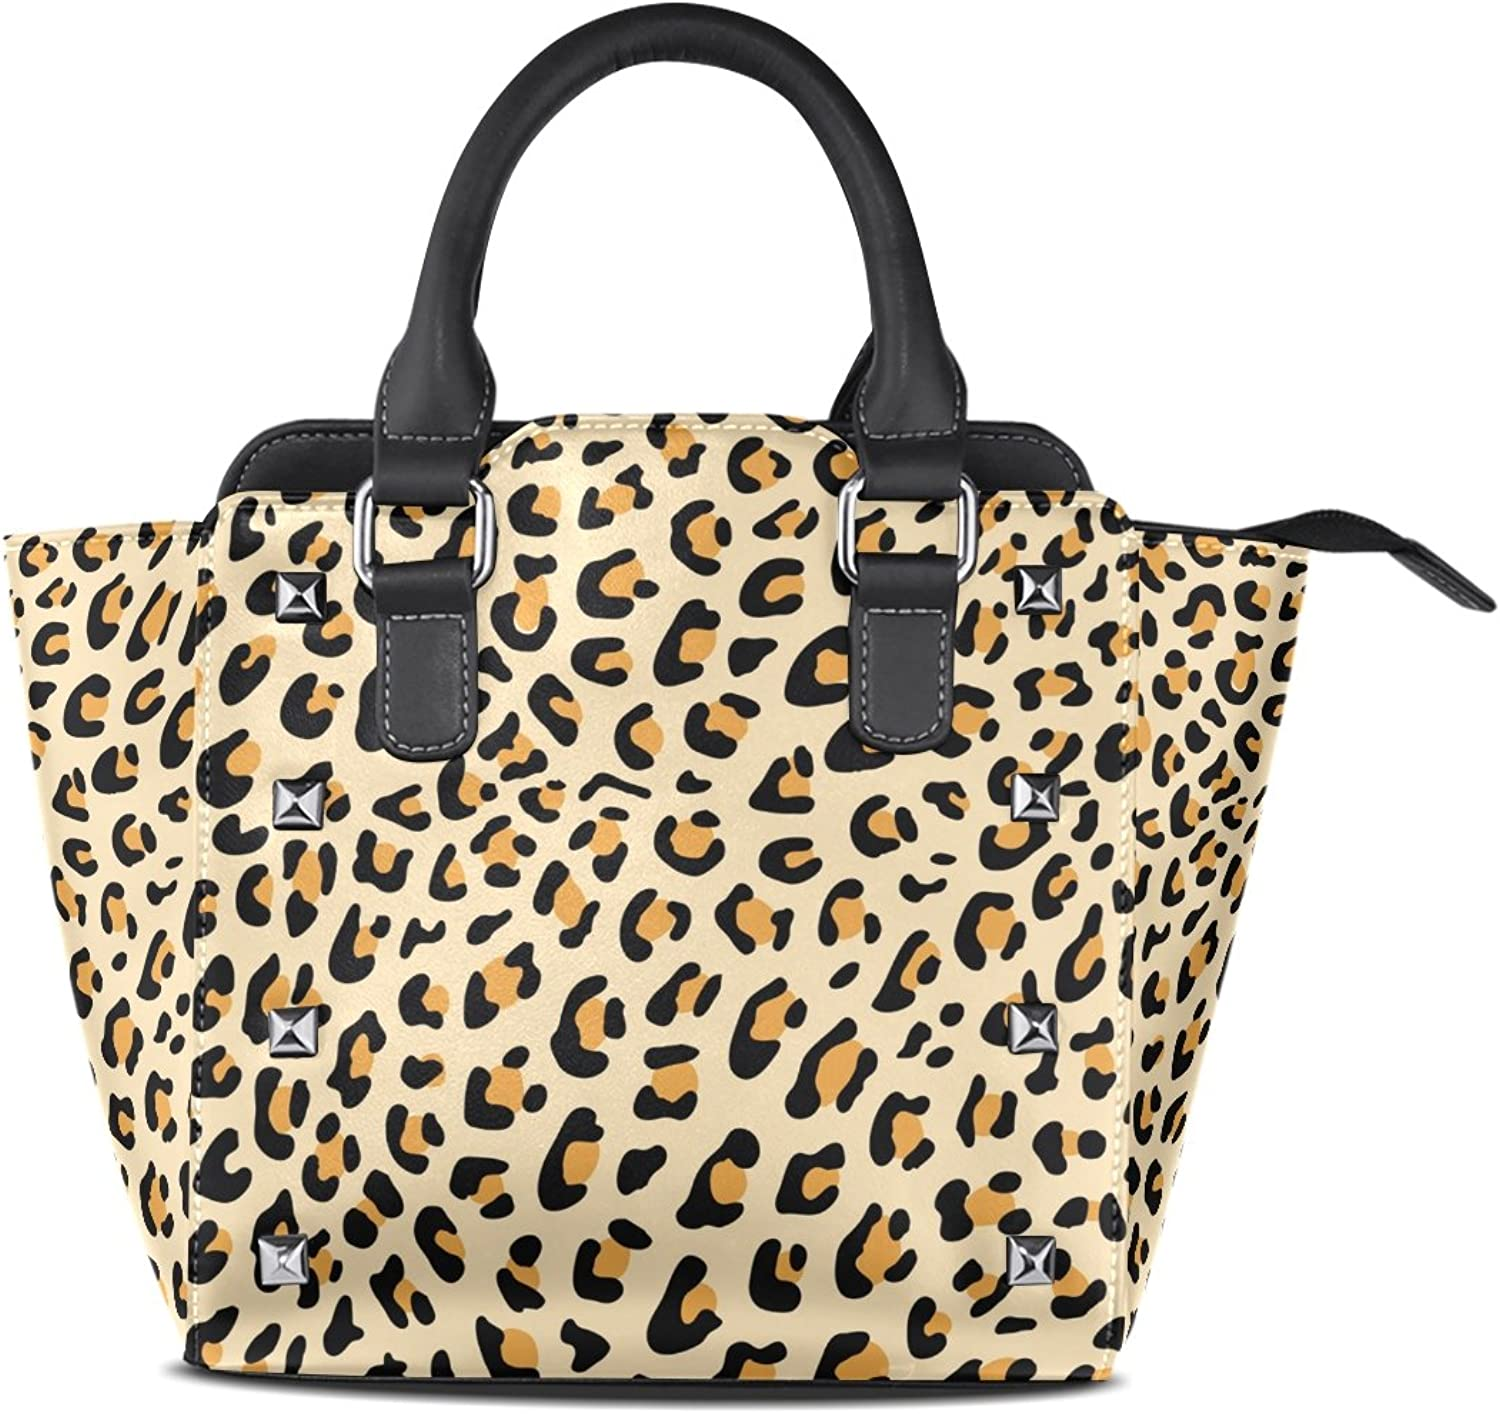 My Little Nest Women's Top Handle Satchel Handbag Leopard Skin Pattern Ladies PU Leather Shoulder Bag Crossbody Bag